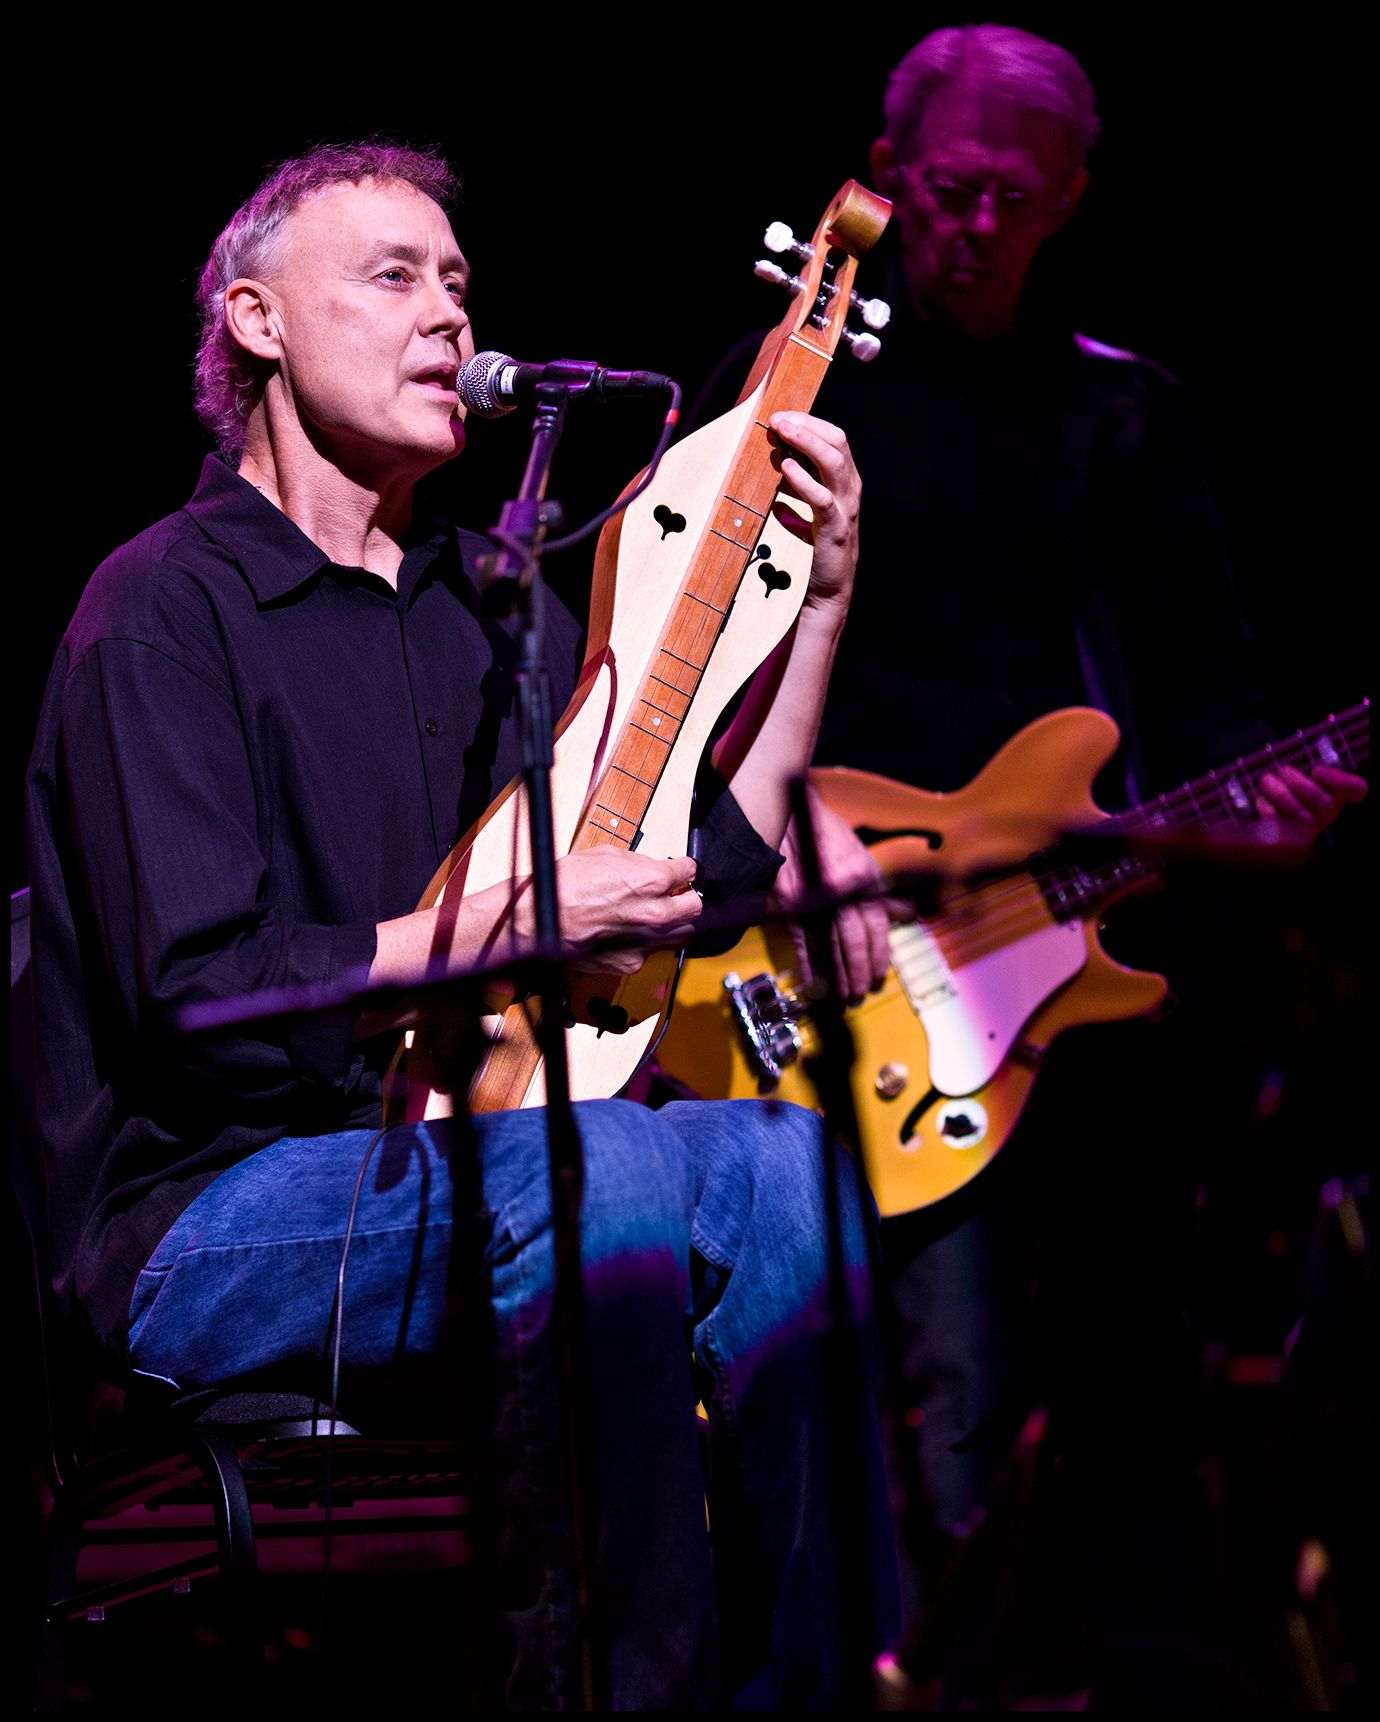 Hot Tuna - Bruce Hornsby - Beacon Theater, NYC 12.03.10